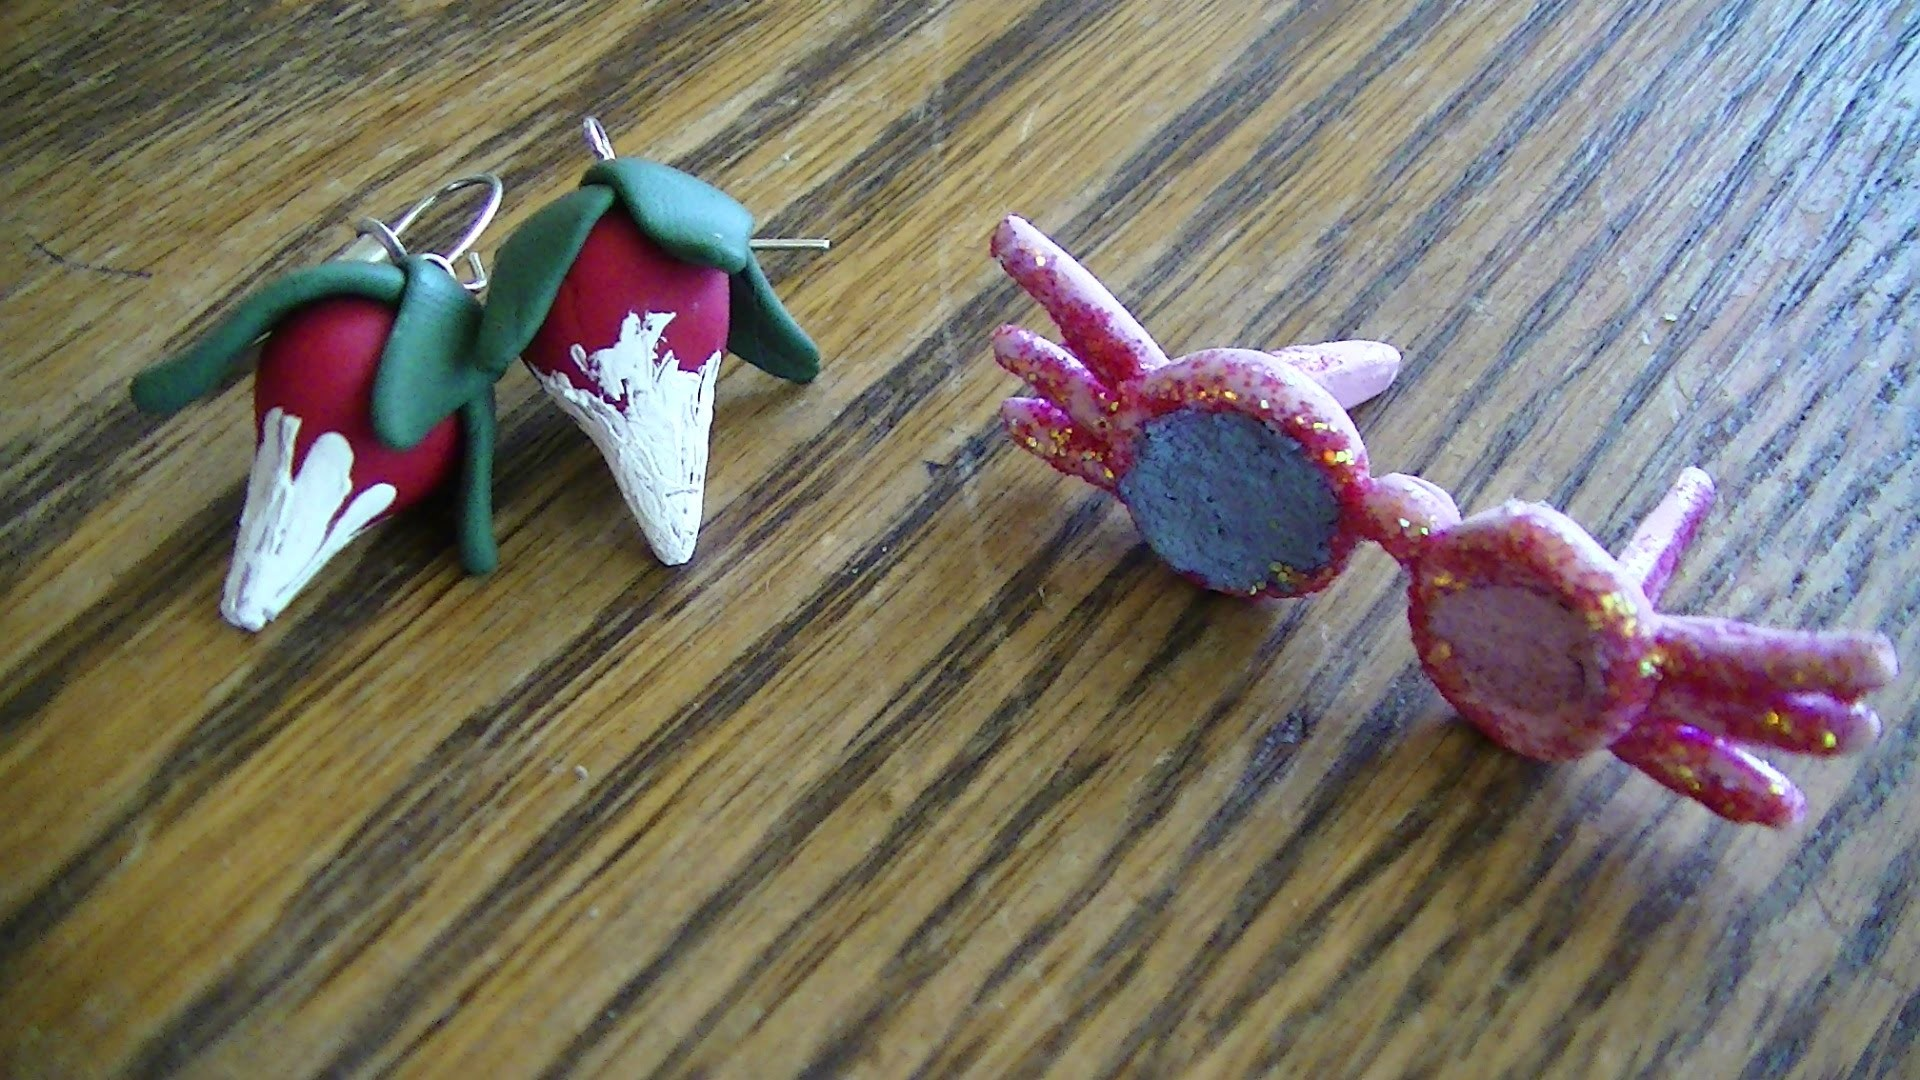 Luna LoveGood's Earrings and SpectraSpecs Clay tutorial